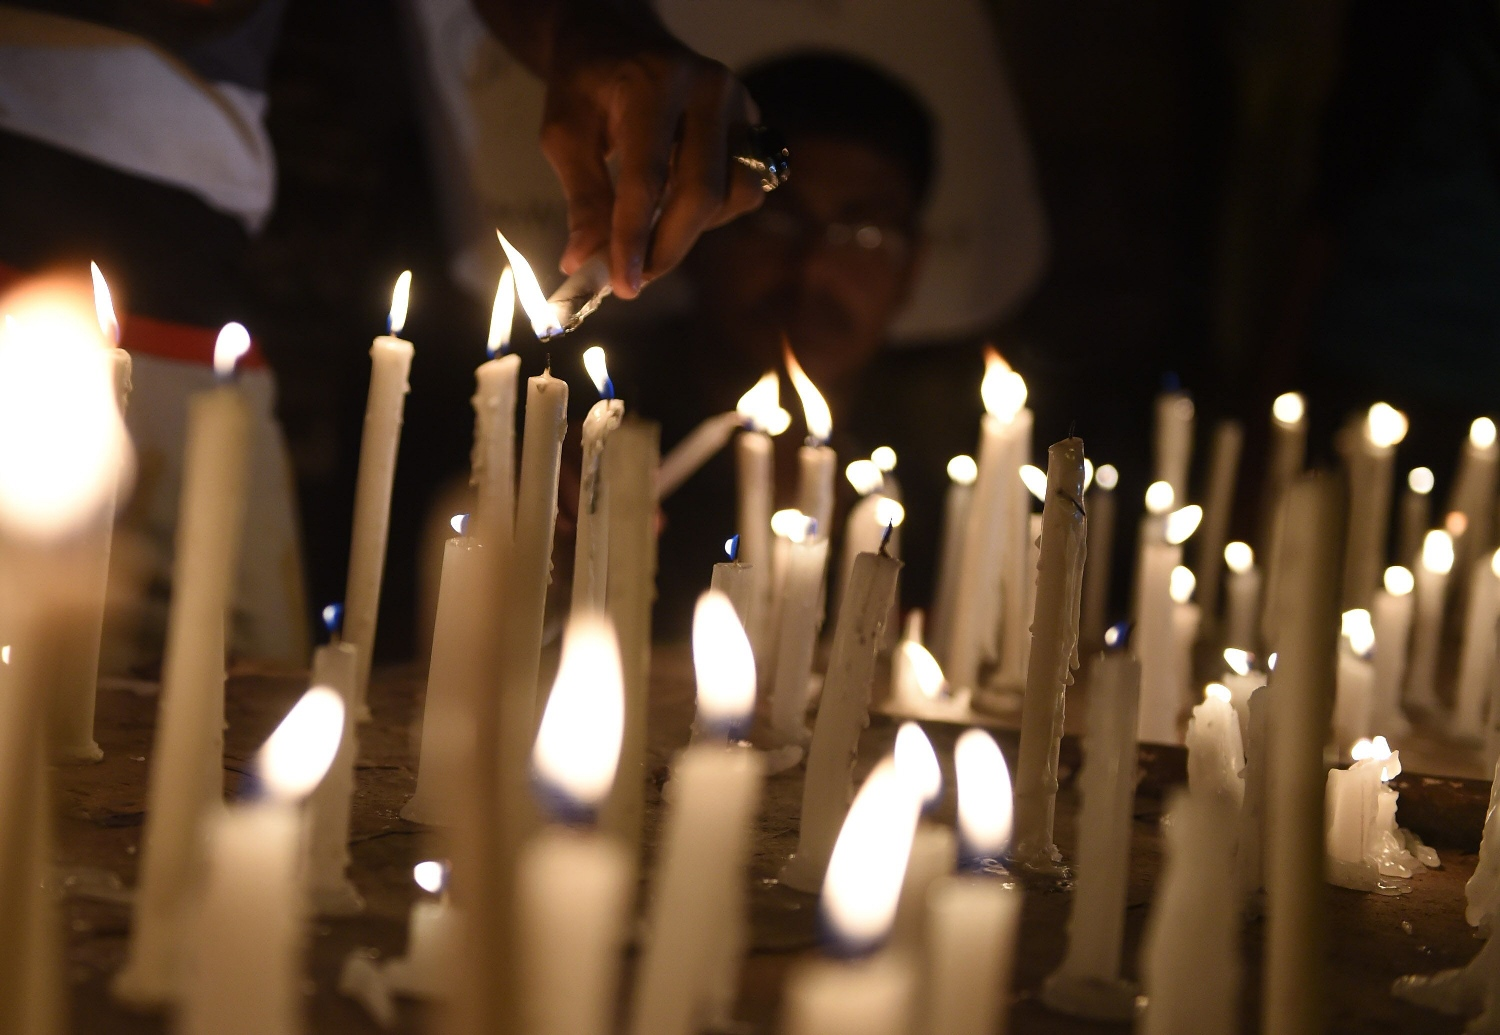 Pakistani residents light candles during a vigil for the victims following an attack by gunmen on a Shia Ismaili minority bus in Karachi on May 13, 2015. PHOTO: AFP